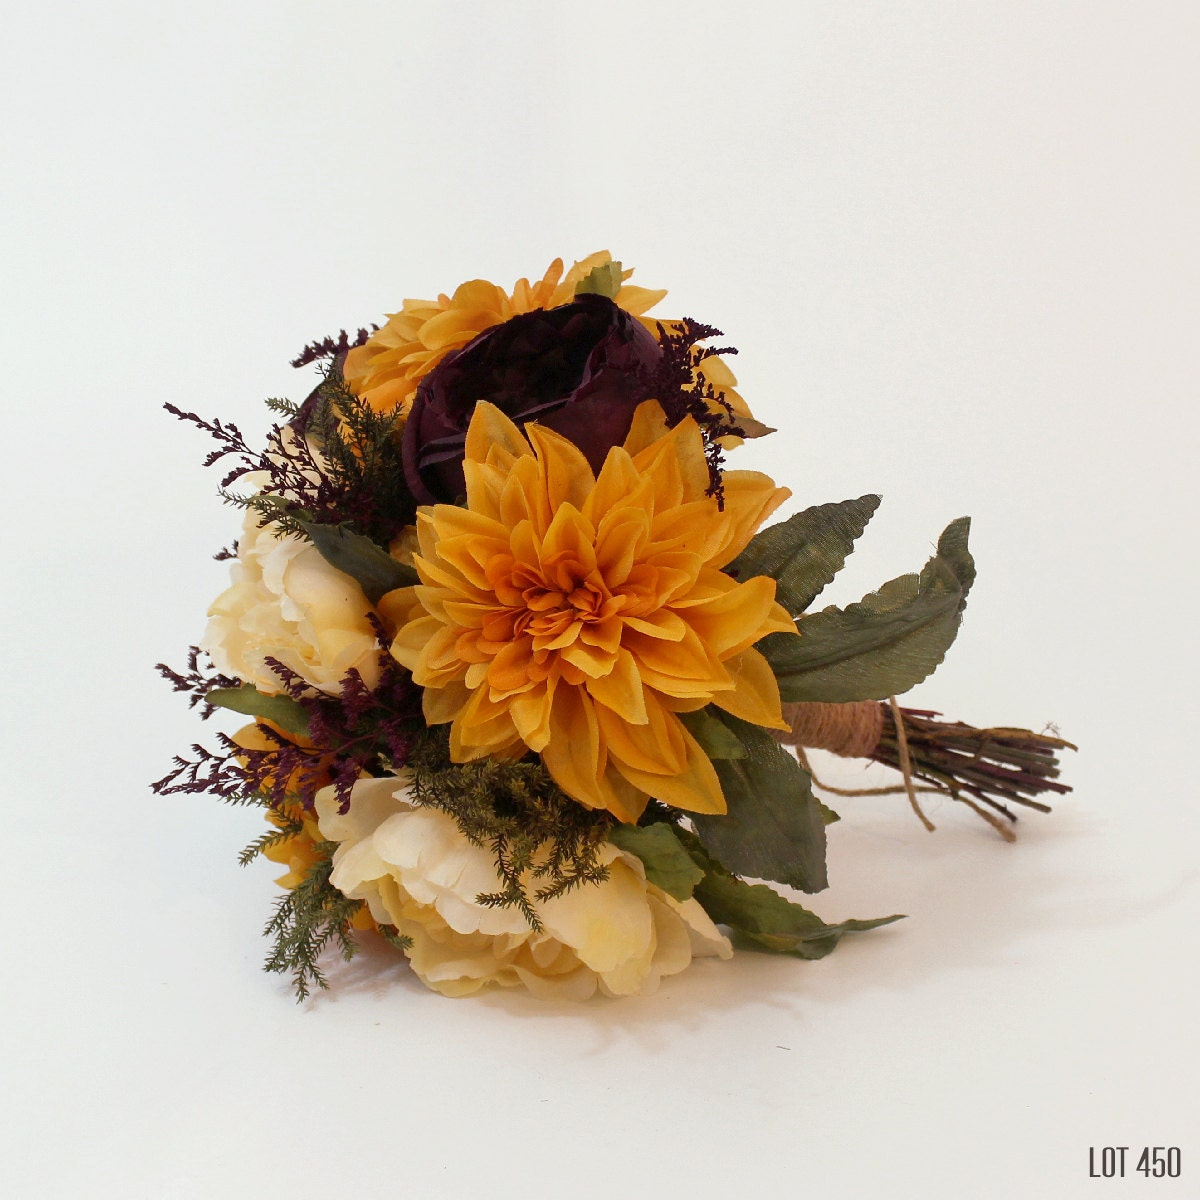 Pretty dry flower wedding bouquets contemporary images for wedding fall wedding bouquet silk and dry flower bridal boquet bride izmirmasajfo Choice Image